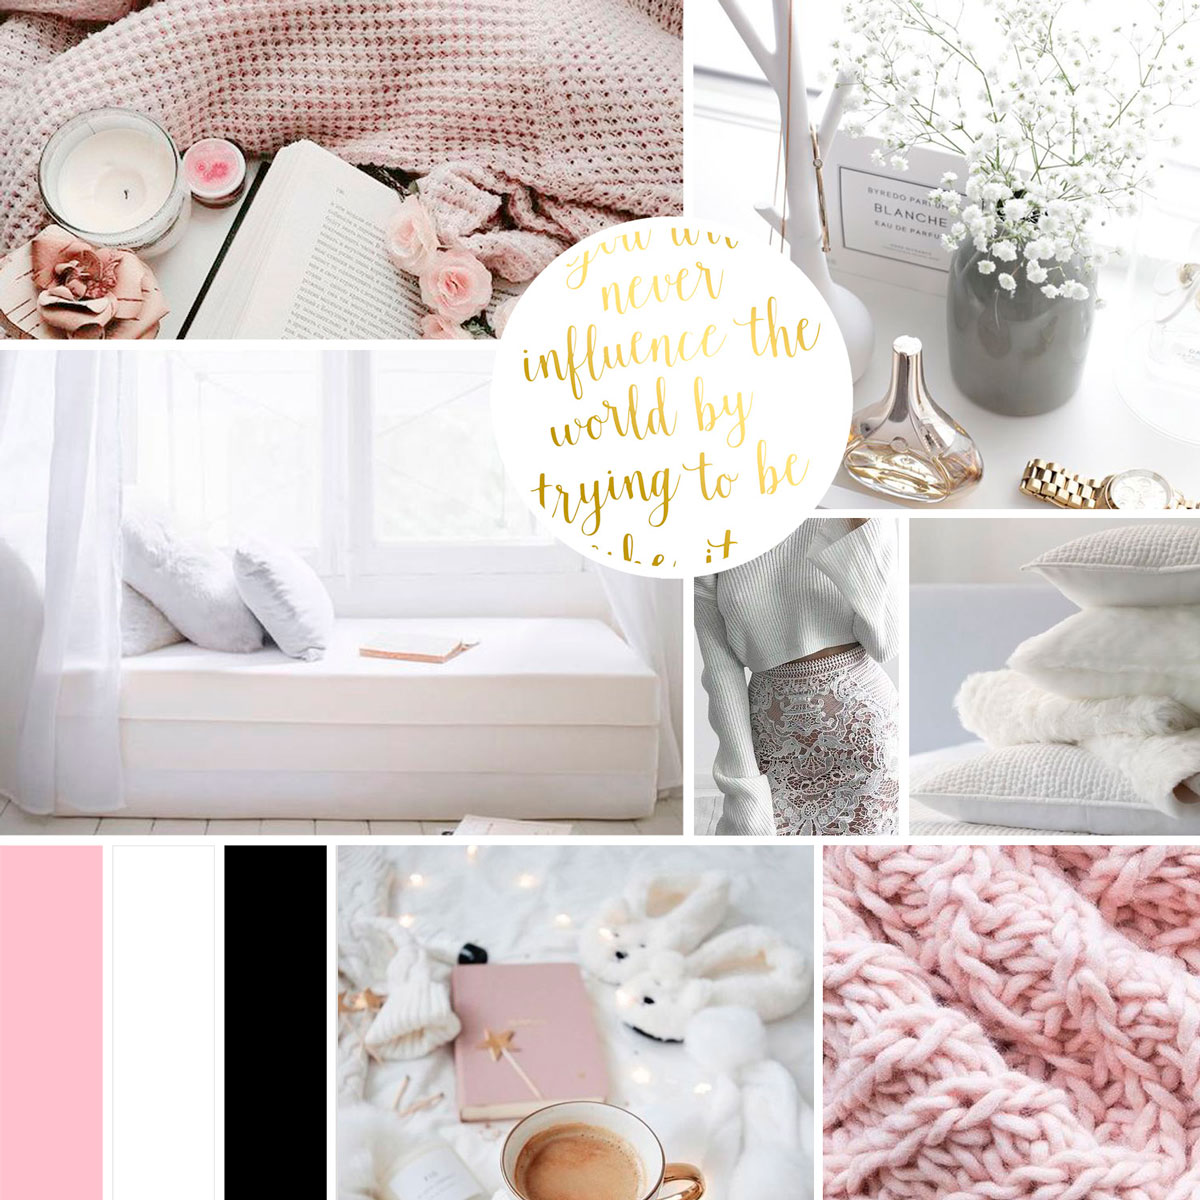 Lisa Falconer's mood board for her website. Custom designed by Jessica Haines Design. If you are ready to take your business to the next level with a website that looks good and makes you money, click through to see what you new website could look like! | www.jessicahainesdesign.com